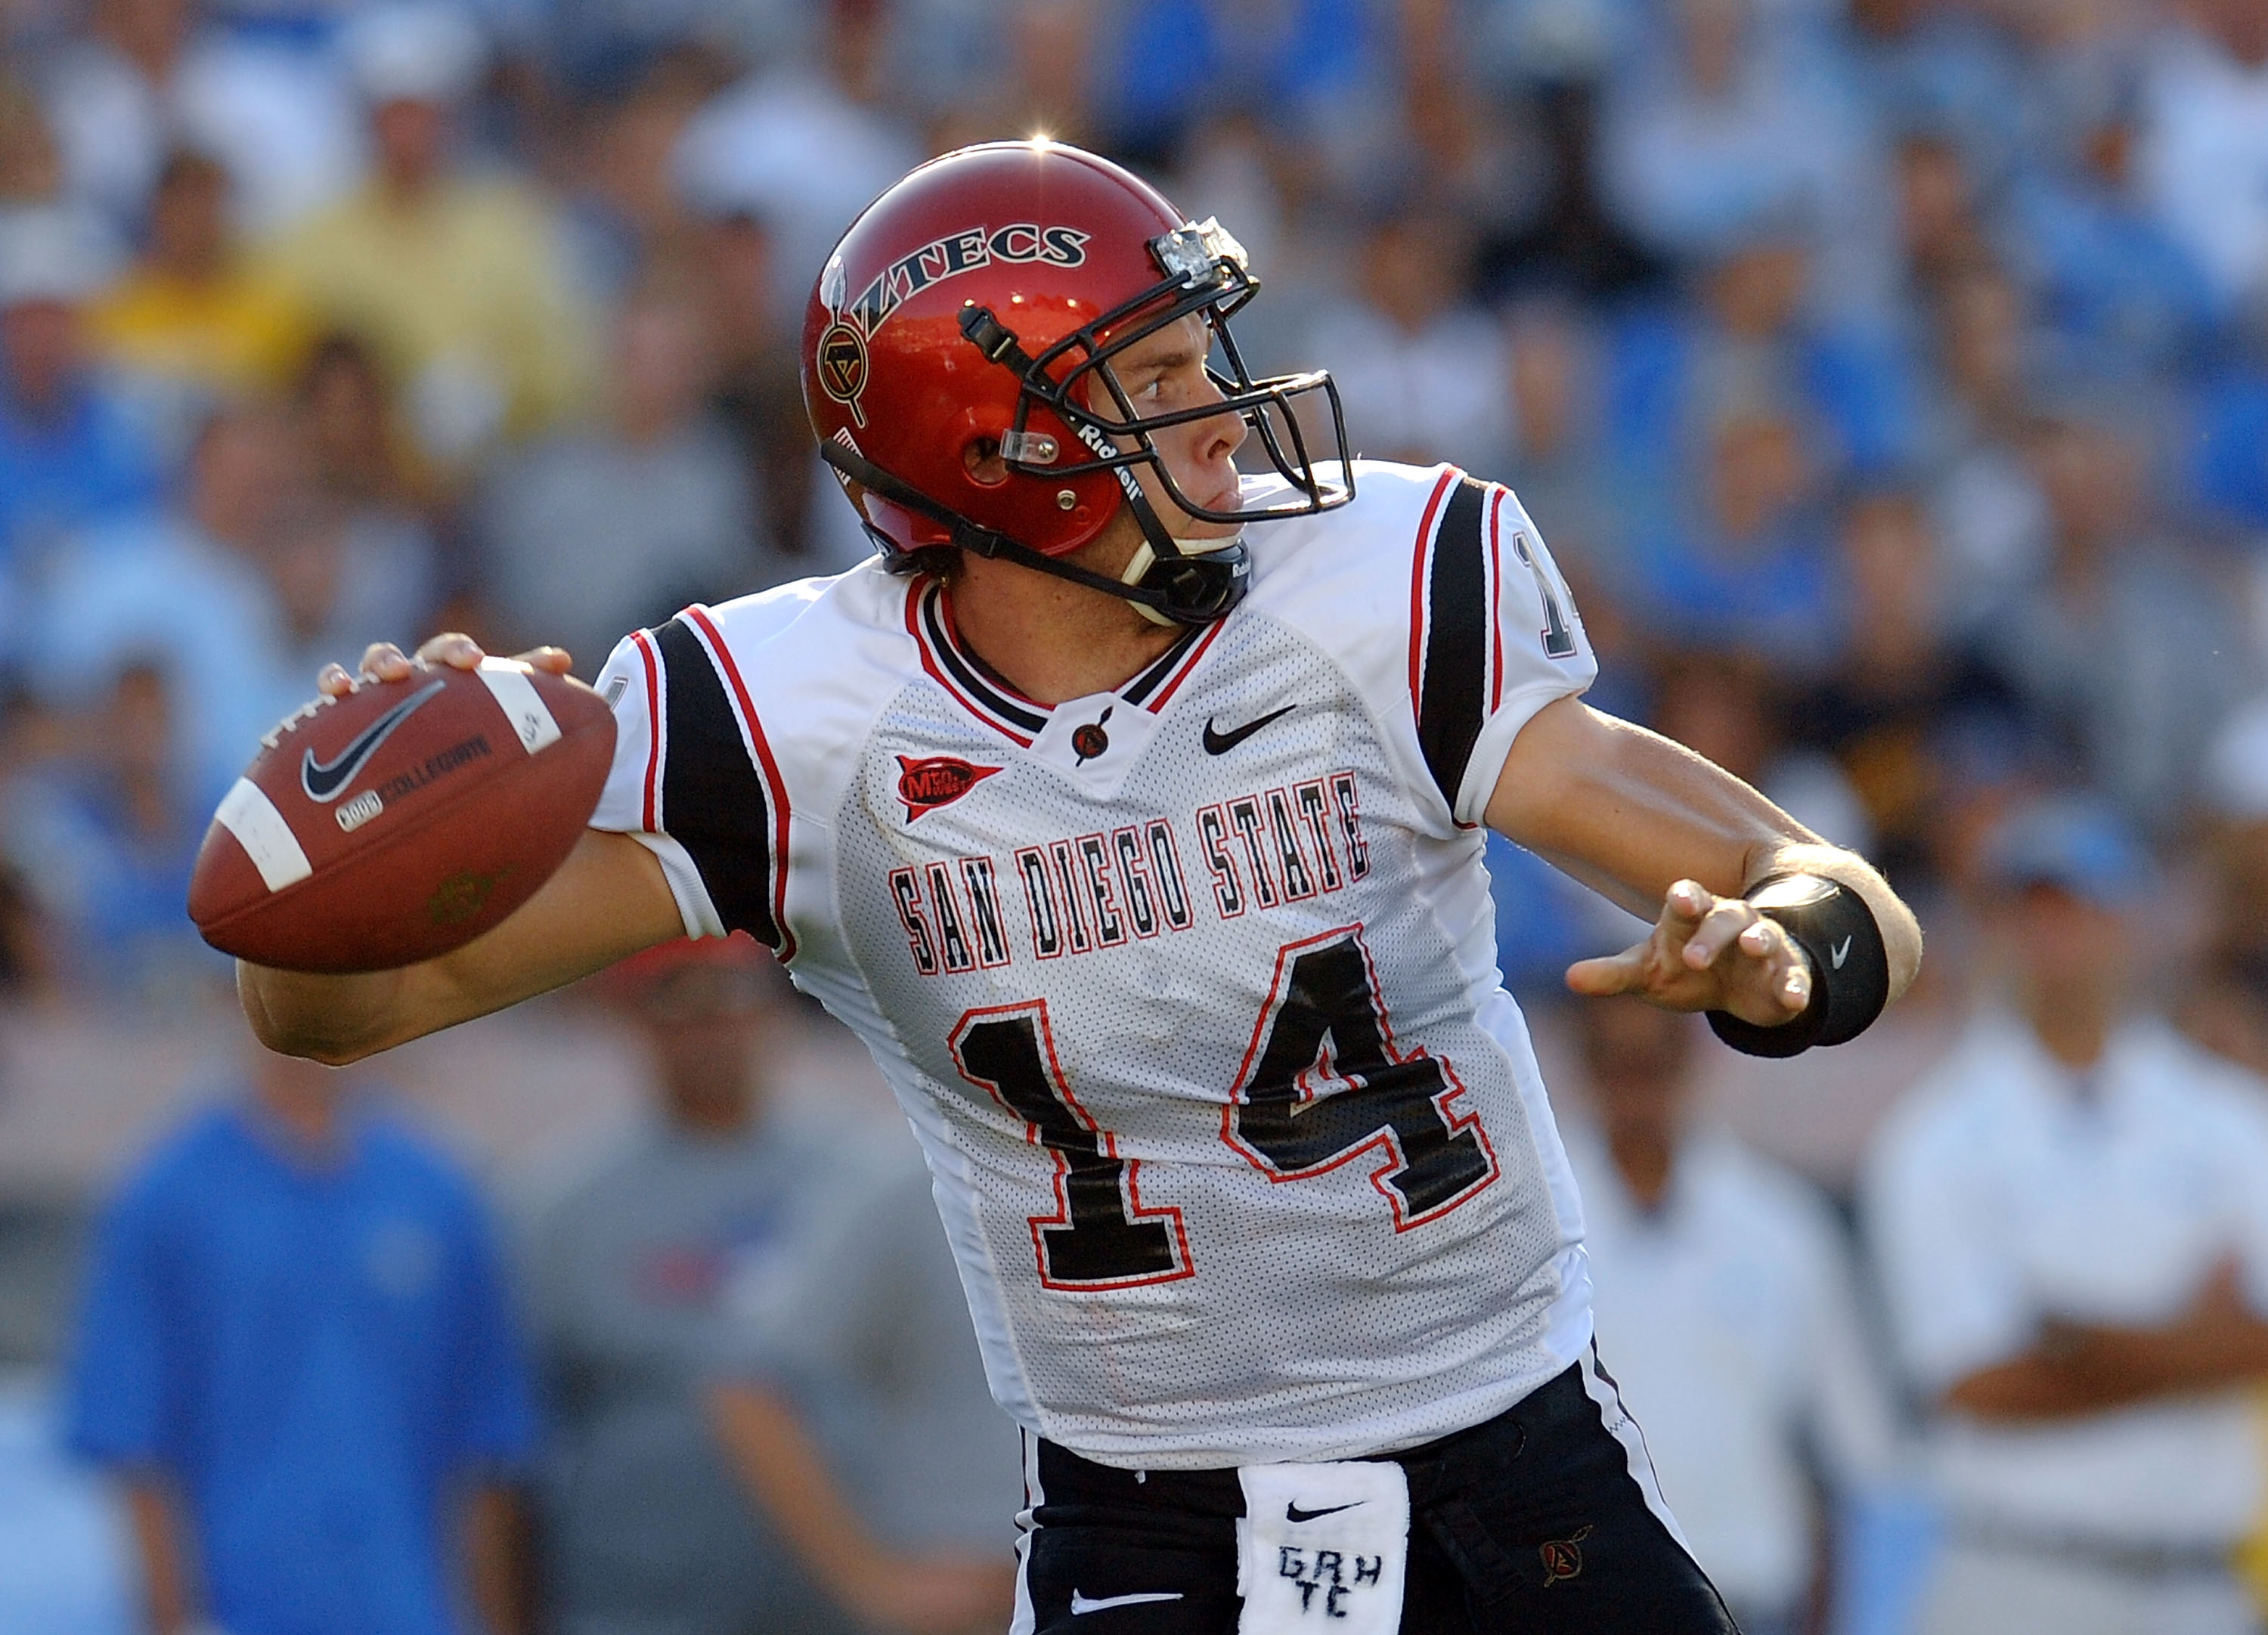 PASADENA, CA - SEPTEMBER 05:  Quarterback Ryan Lindley #14 of the San Diego State Aztecs looks to pass in the first half against the UCLA Bruins at The Rose Bowl on September 4, 2009 in Pasadena, California.  (Photo by Lisa Blumenfeld/Getty Images)